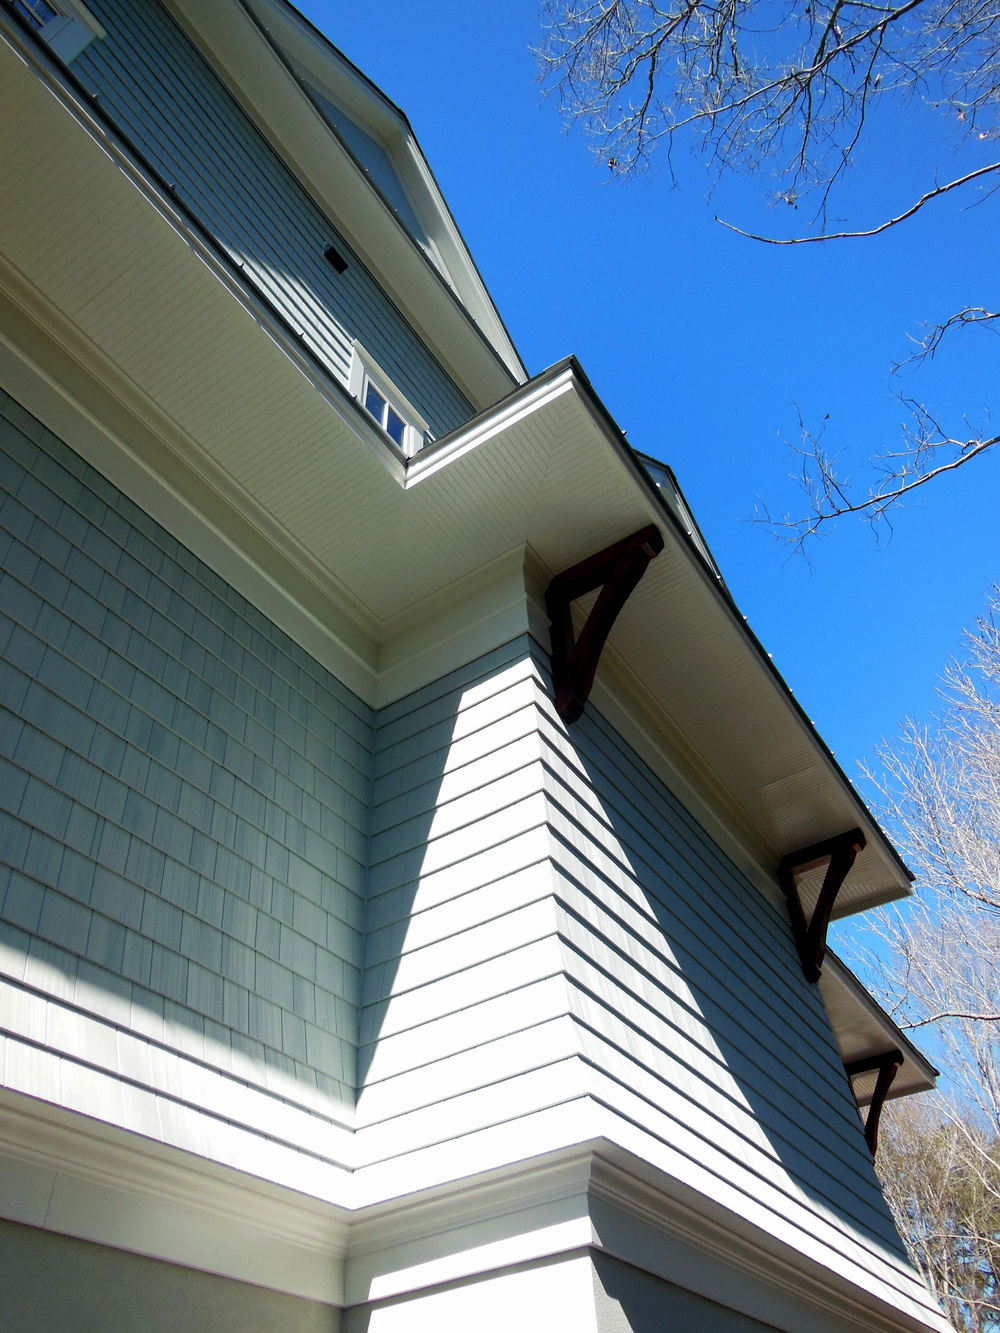 The flair detail was a success due to a great exterior trim crew and a great product that Nichiha provided.